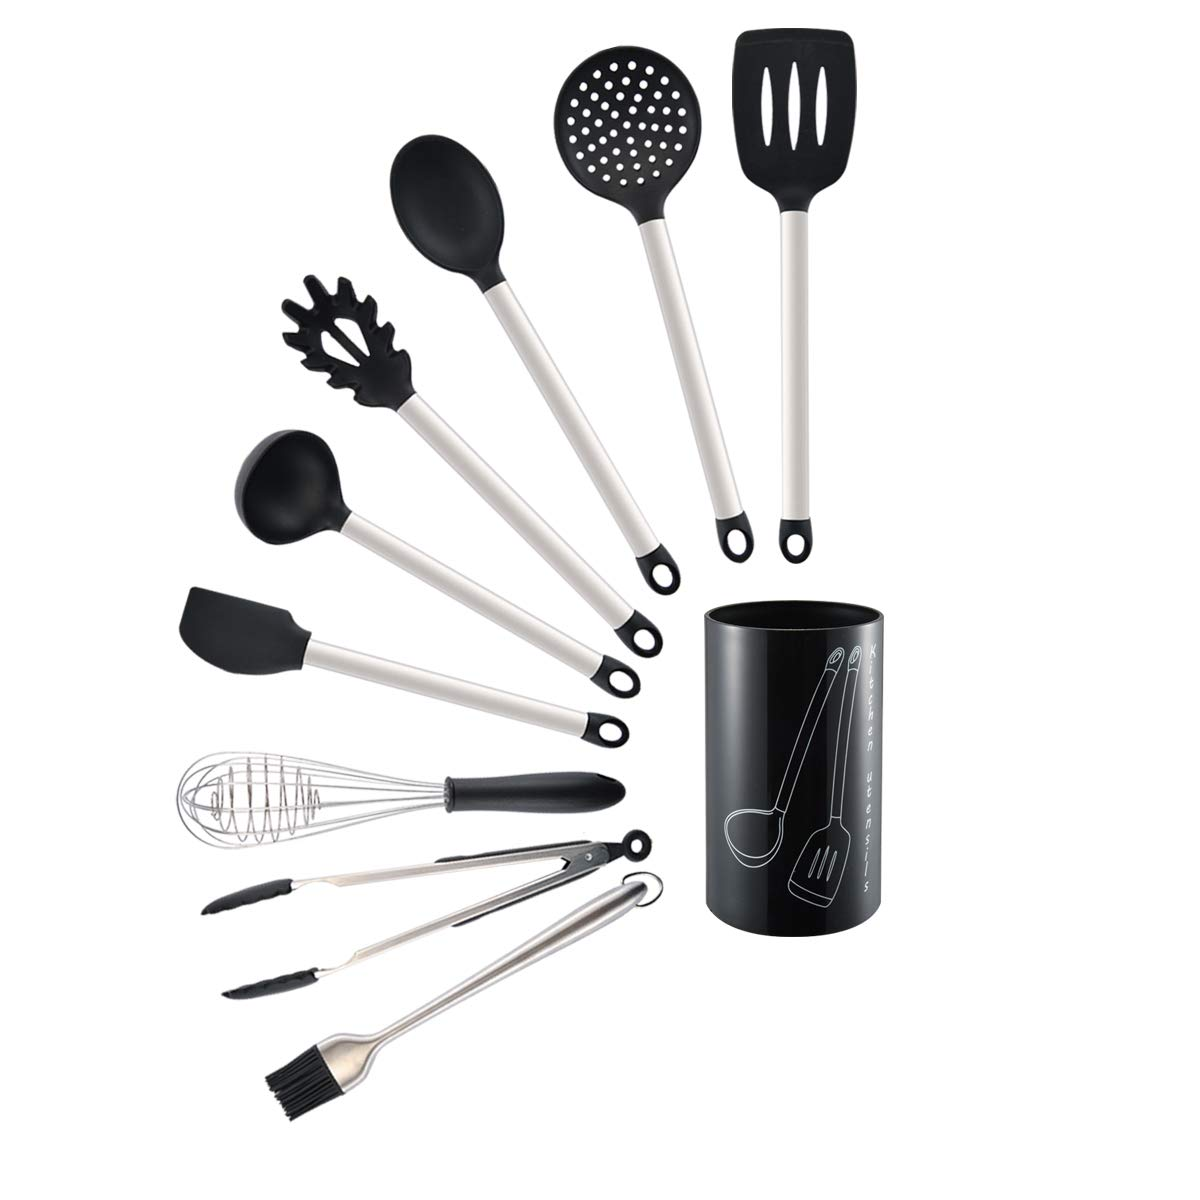 10 Piece Silicone Kitchen Cooking Utensils Set,Nonstick Cooking Spatulas-Silicone&Stainless Steel Kit Tongs,Spoon,Spatula Tools,Pasta Server,Ladle,Strainer,Whisk,Grill Brushes,Utensils Holder Included